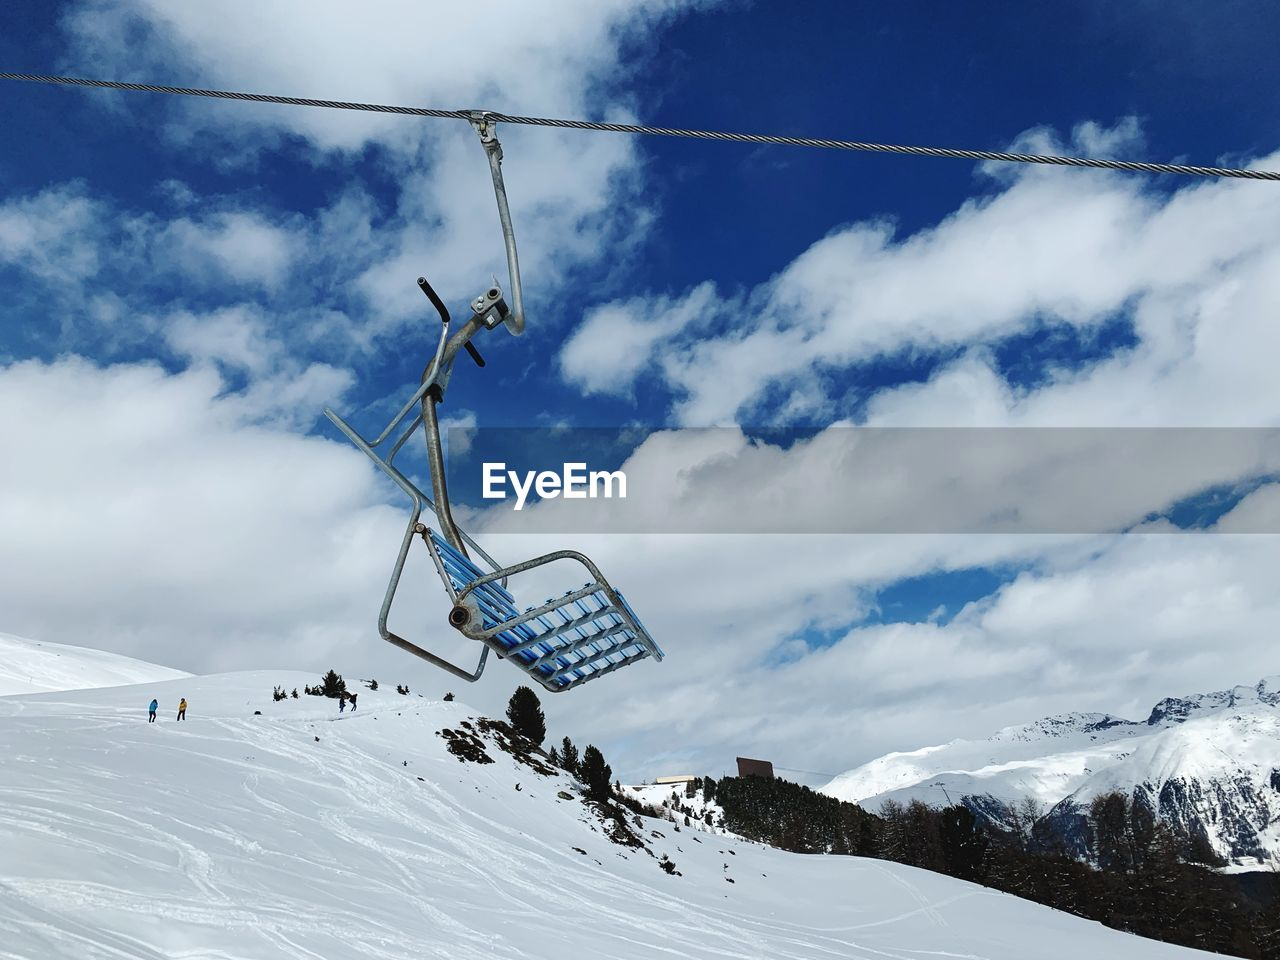 winter, cold temperature, snow, cloud - sky, sky, mountain, scenics - nature, cable car, beauty in nature, day, ski lift, tranquil scene, nature, white color, environment, snowcapped mountain, overhead cable car, sport, tranquility, mountain range, no people, outdoors, ski resort